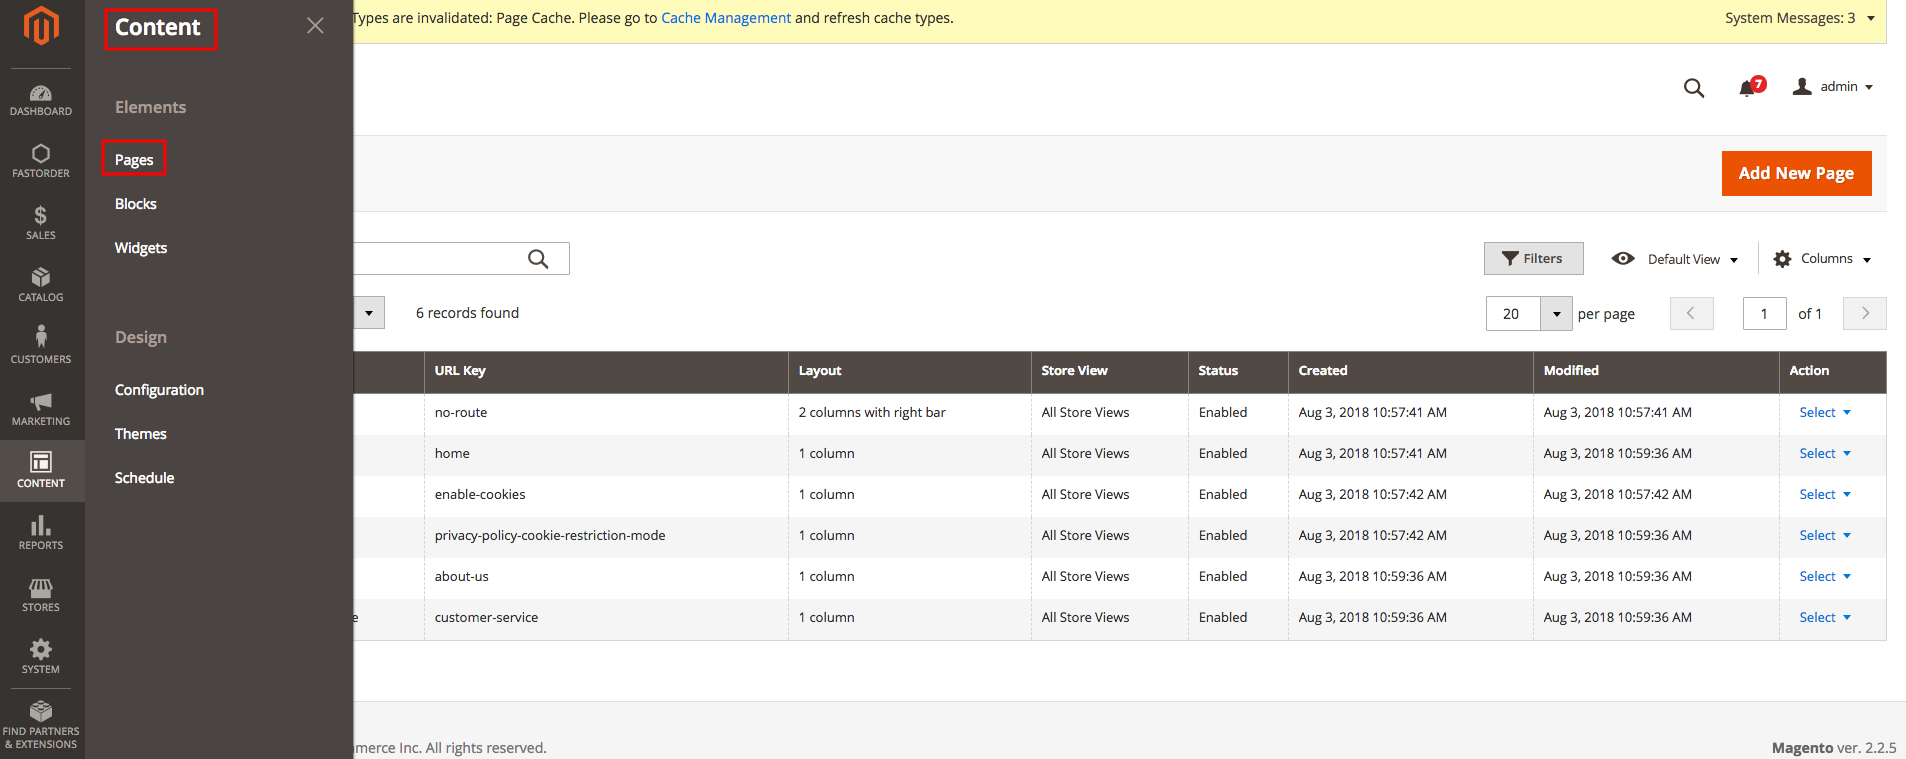 Content-Pages in Magento 2 Admin